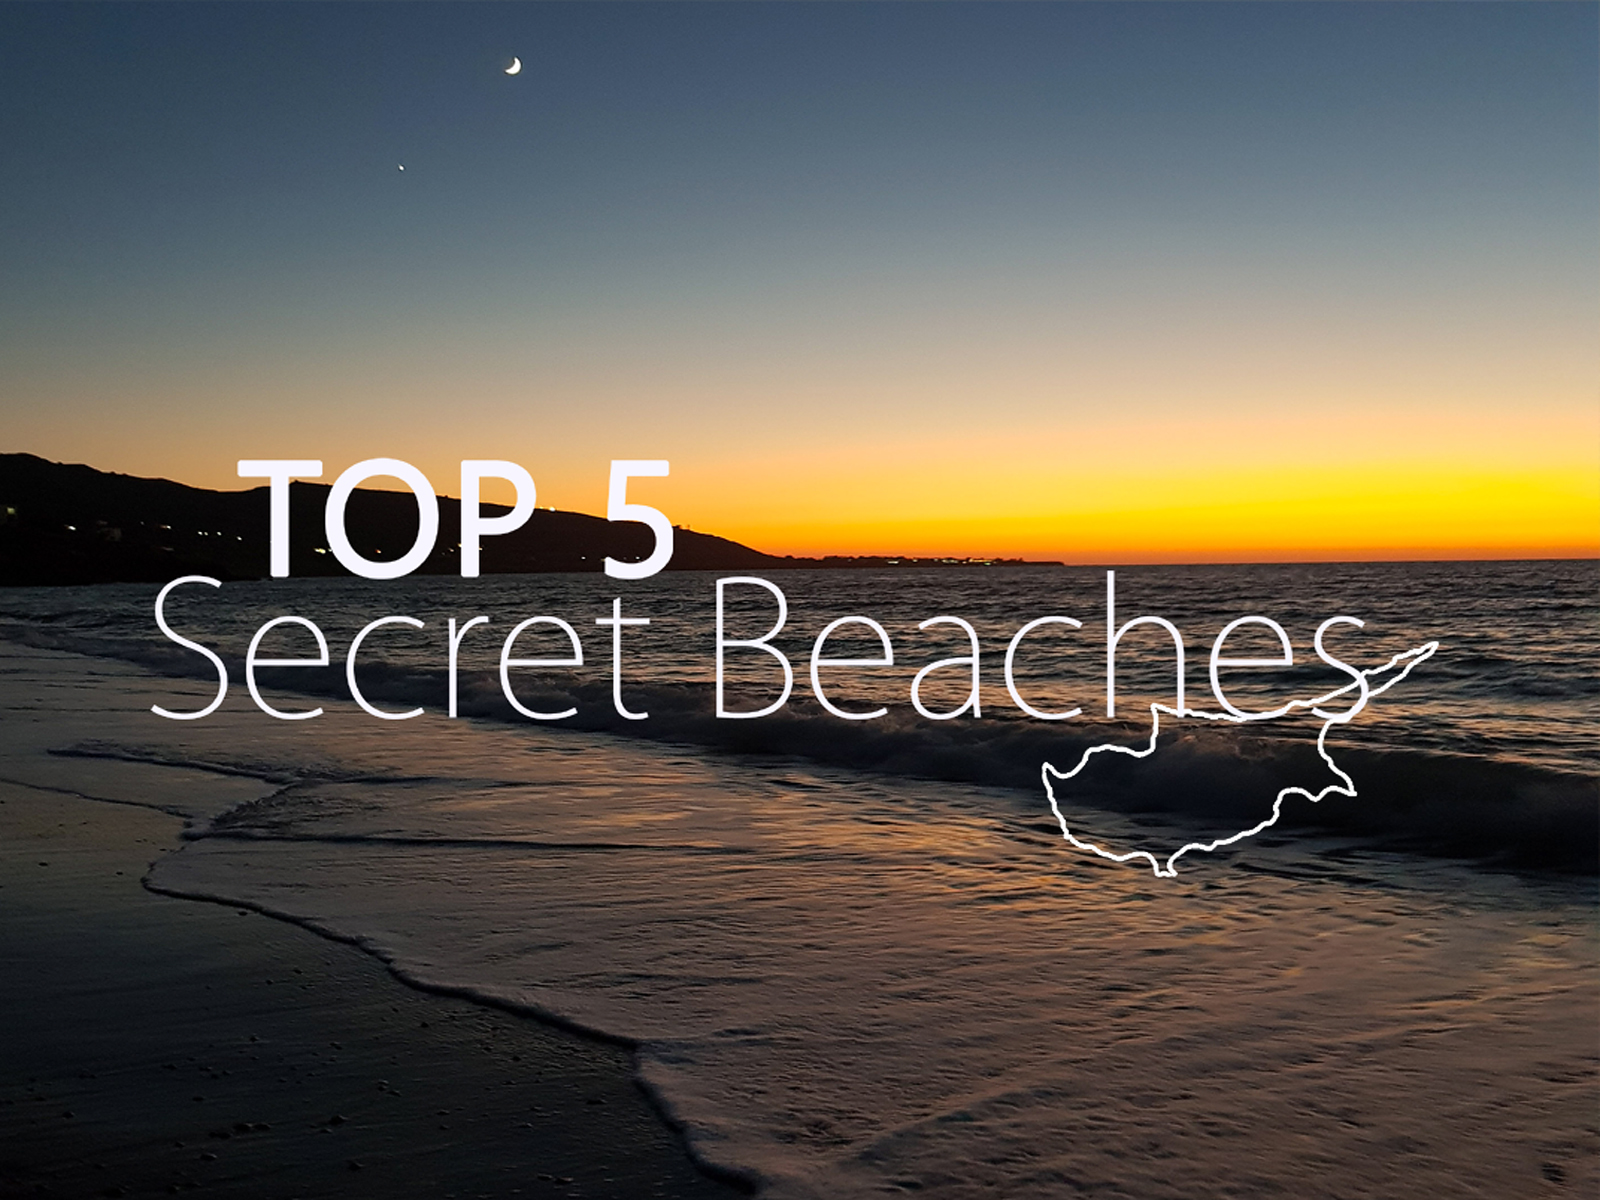 NOS TOP 5 SECRET BEACHES